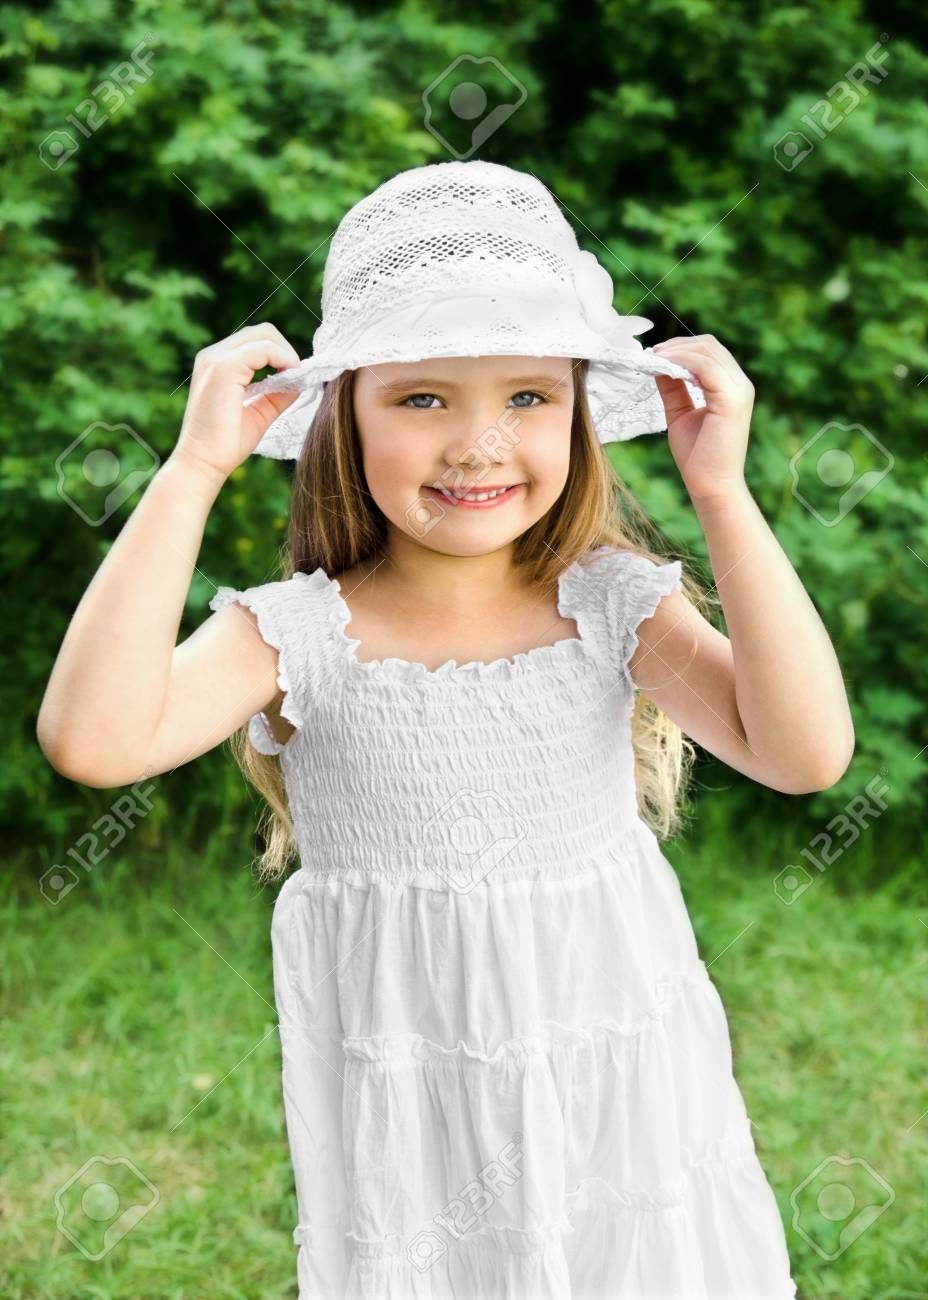 ed4cd468e Outdoor portrait of adorable smiling little girl in white dress and hat  Stock Photo - 20438685